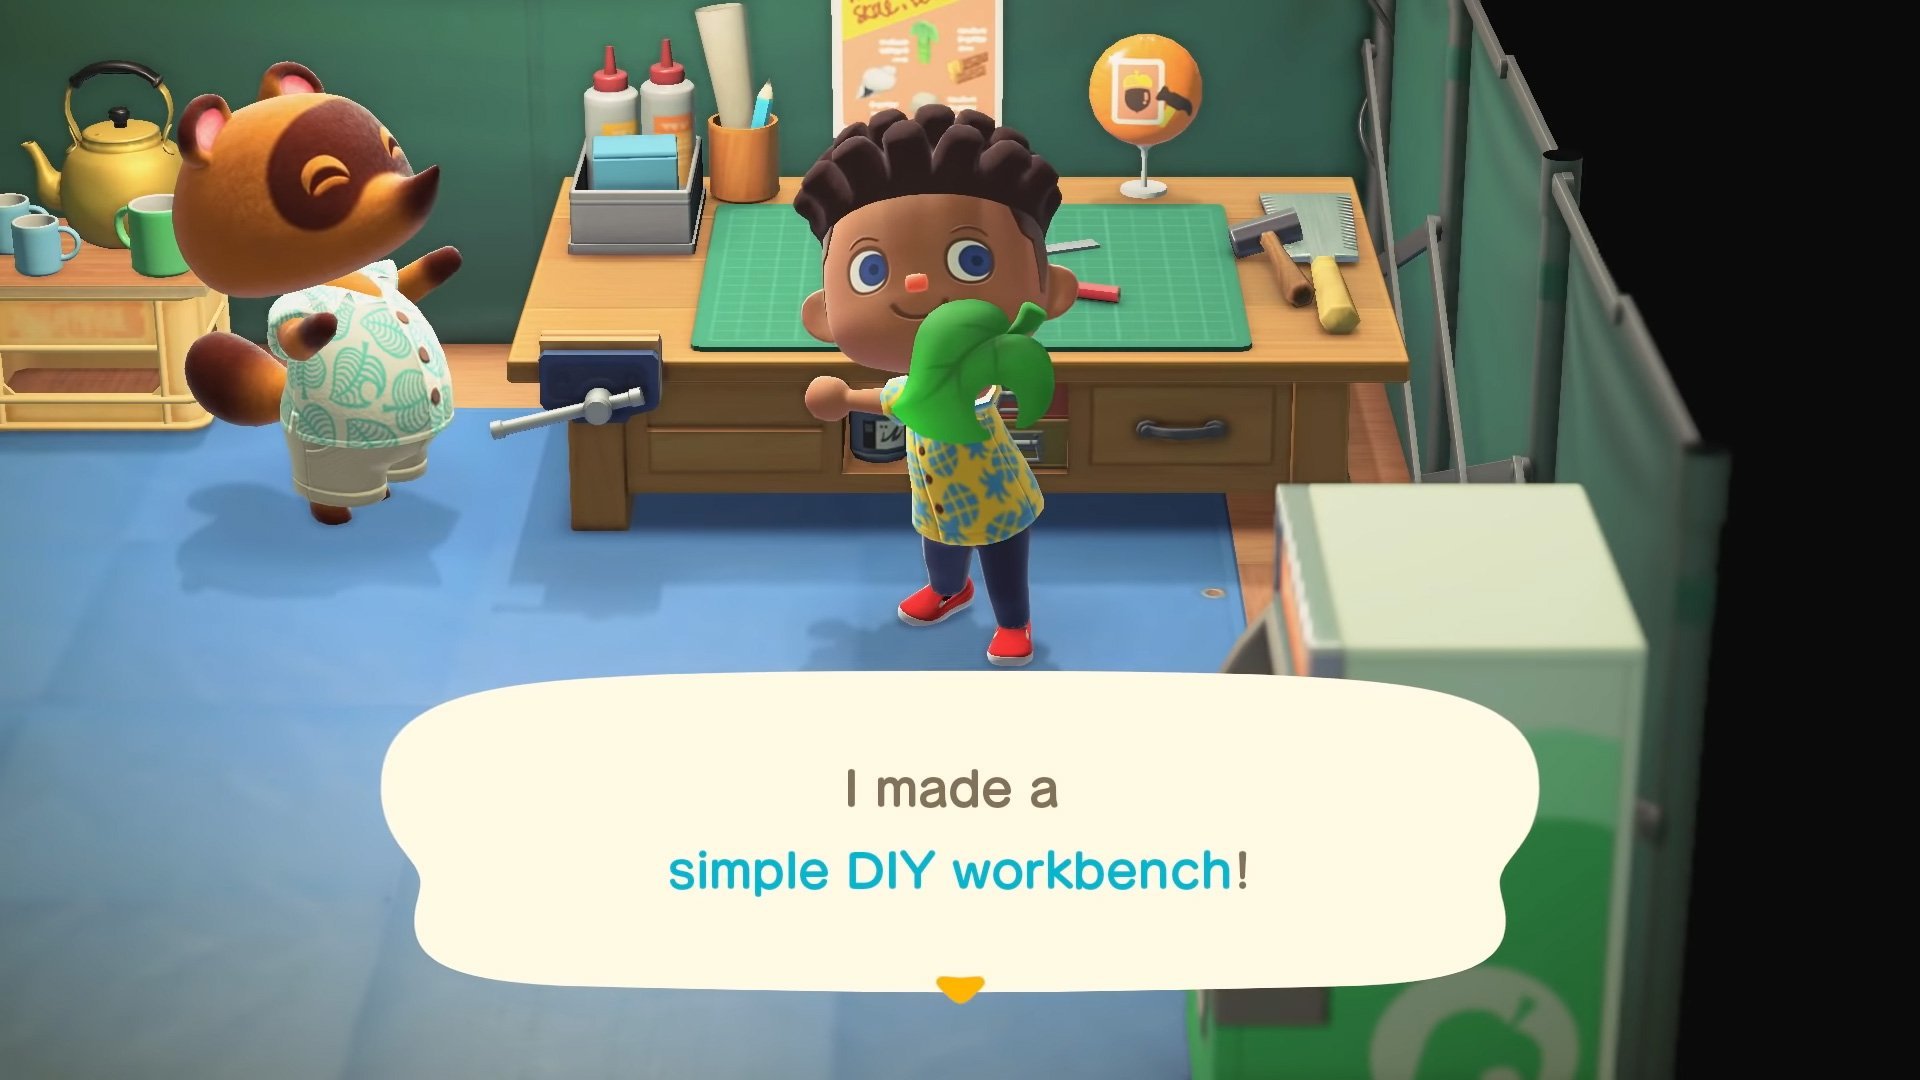 You can tap A to craft faster in Animal Crossing: New Horizons screenshot